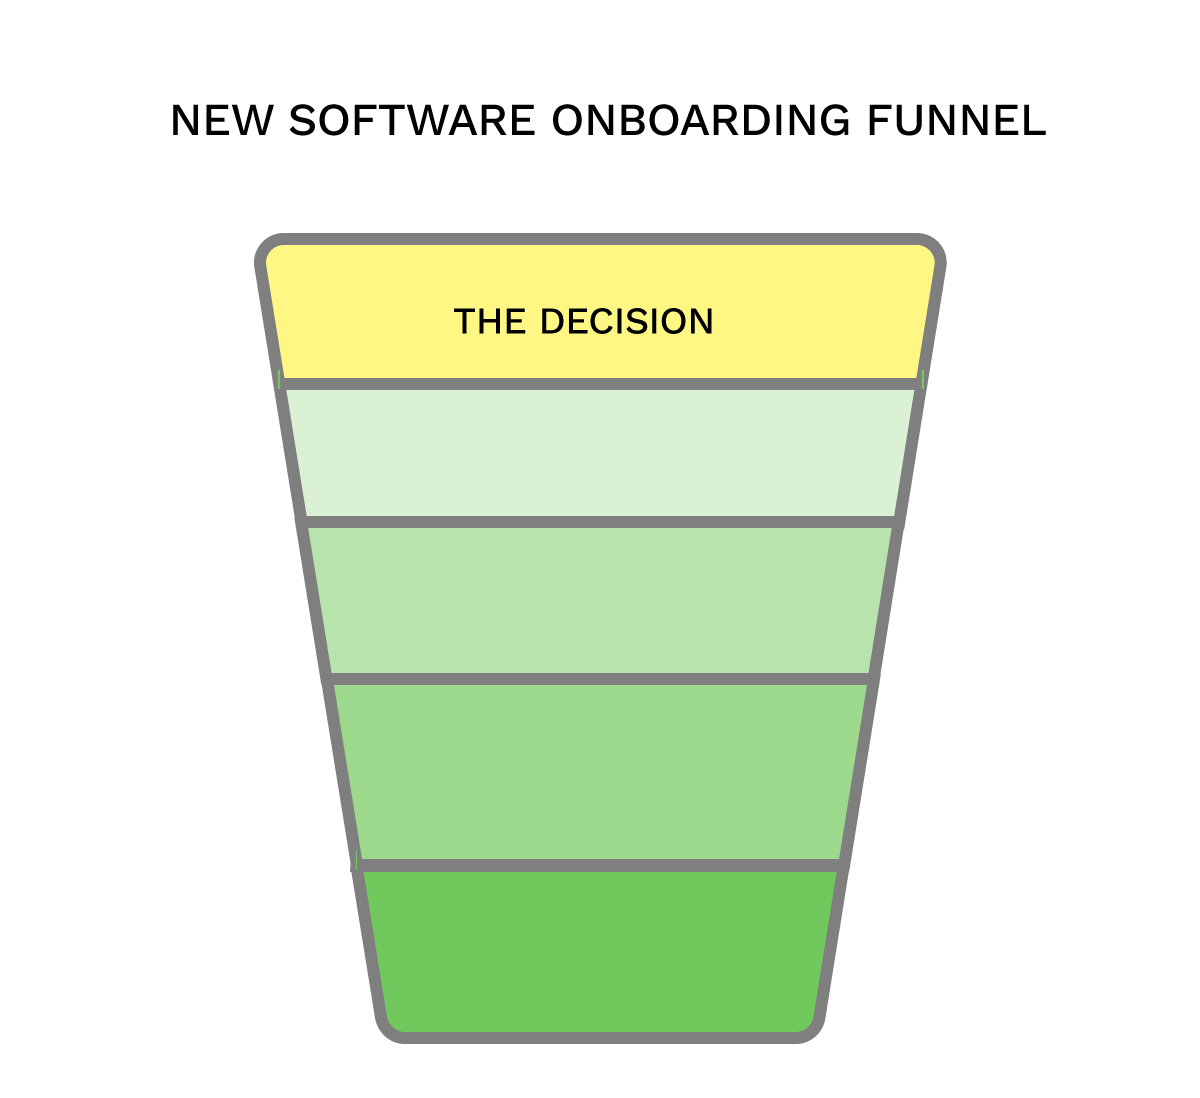 The decision of onboarding funnel